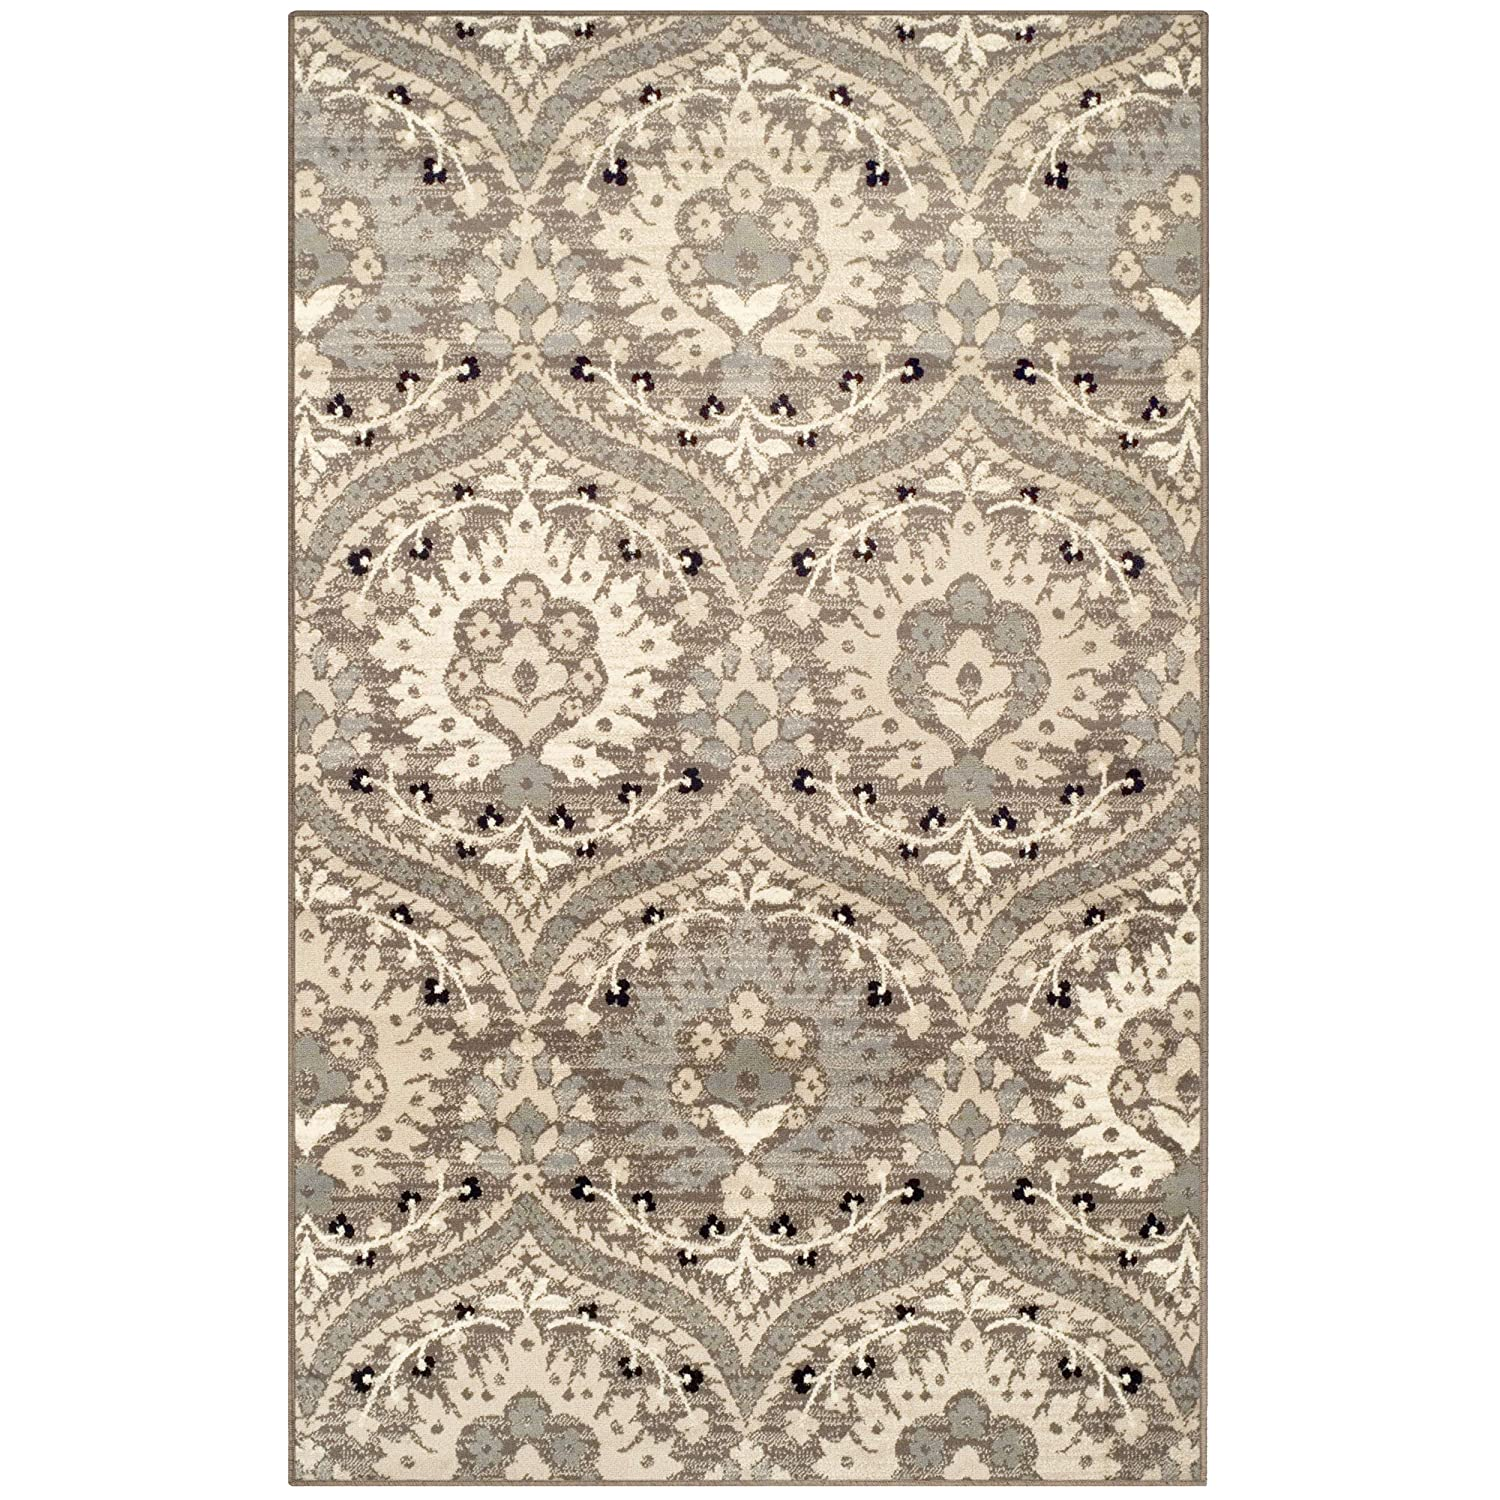 Superior Designer Augusta Collection Area Rug, 8mm Pile Height with Jute Backing, Beautiful Floral Scalloped Pattern, Anti-Static, Water-Repellent Rugs - Beige, 2' x 3' Rug 2' x 3' Rug 2X3RUG-AUGUSTA